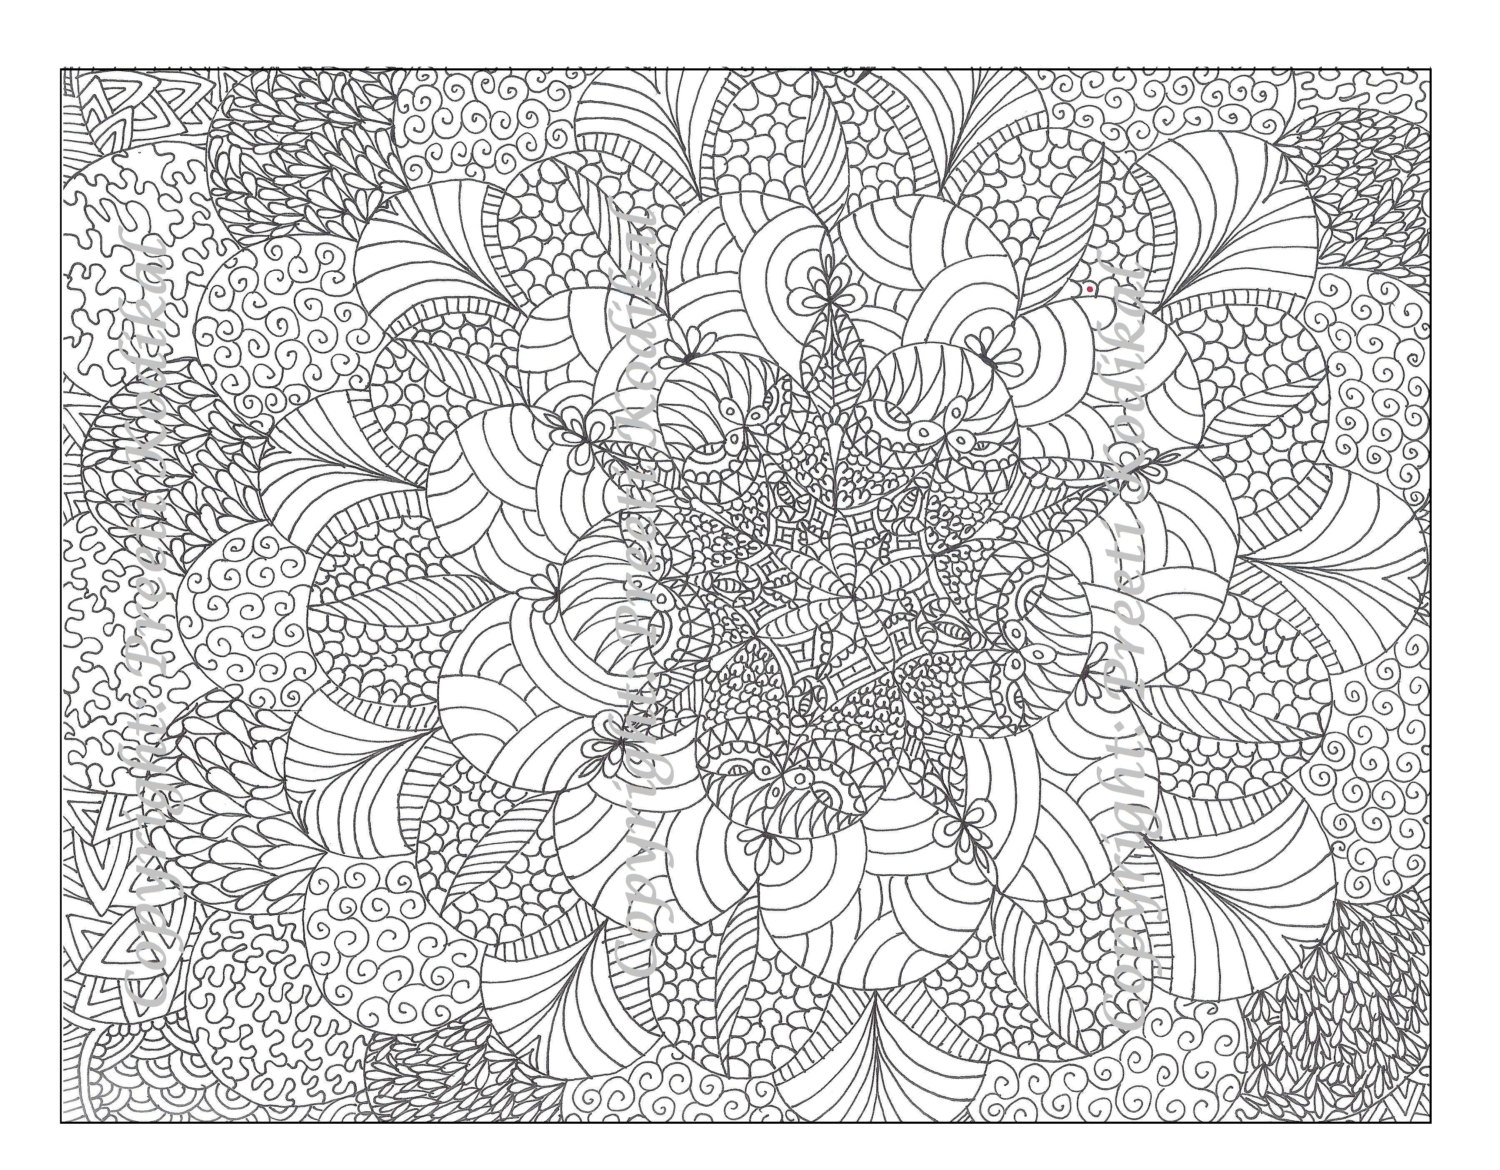 detailed coloring pages printable - Abstract Coloring Pages